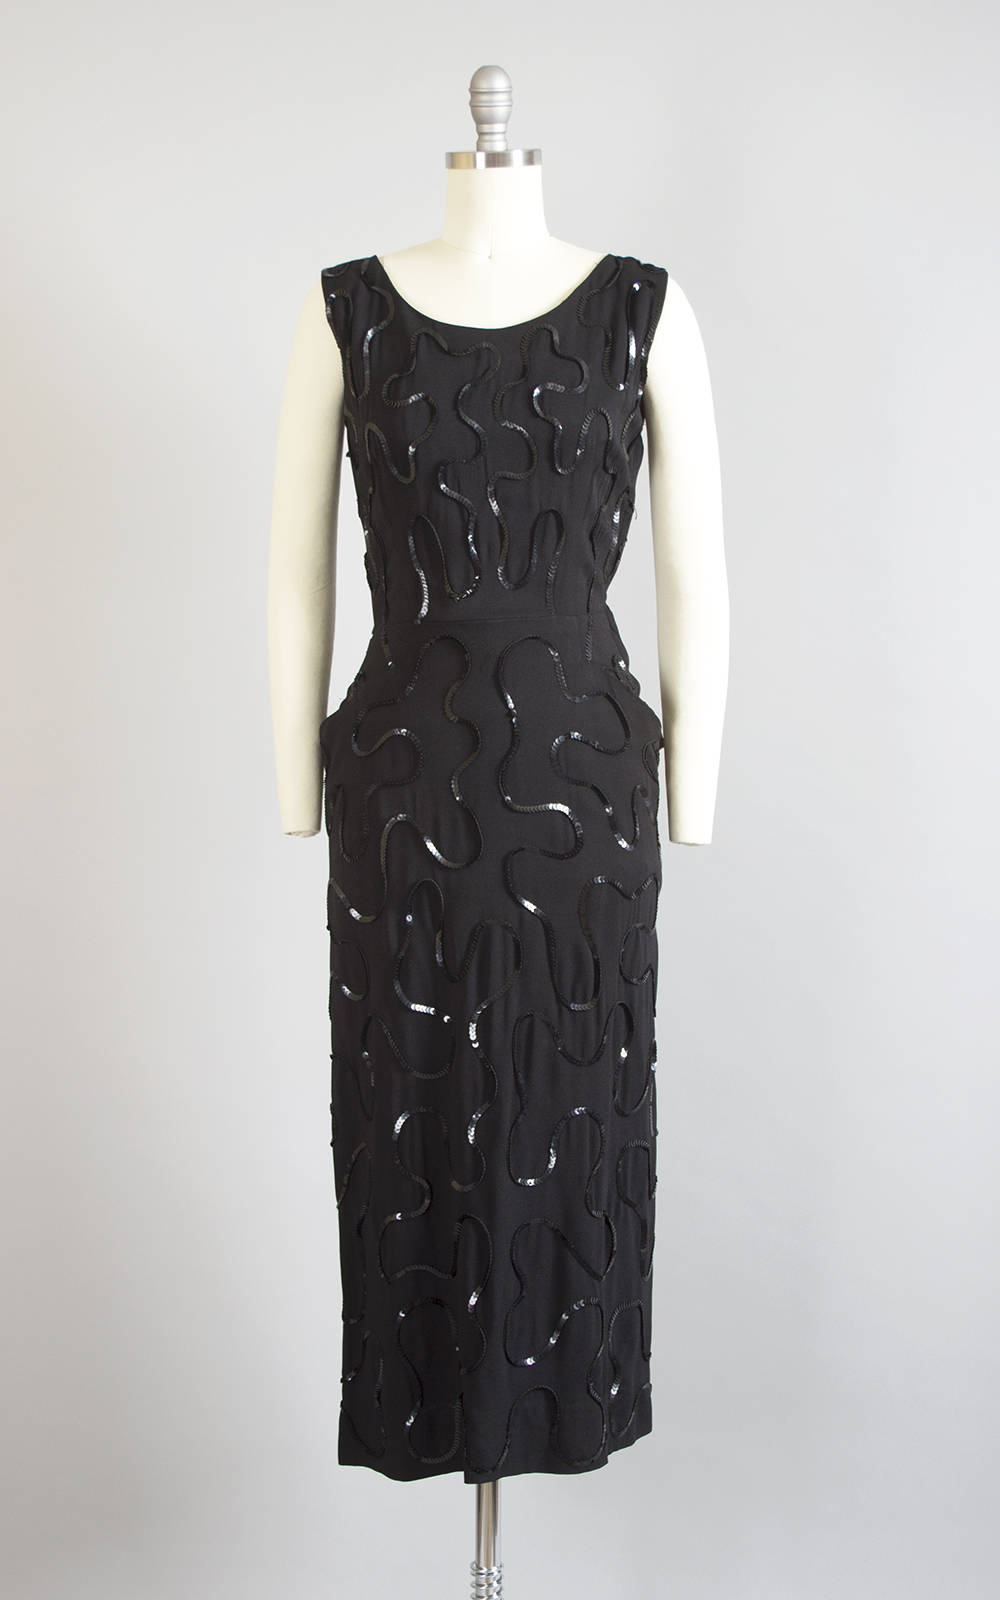 Vintage 1940s Dress | 40s Sequin Soutache Black Rayon Crepe Cocktail Party Wiggle Dress with Pockets (small)